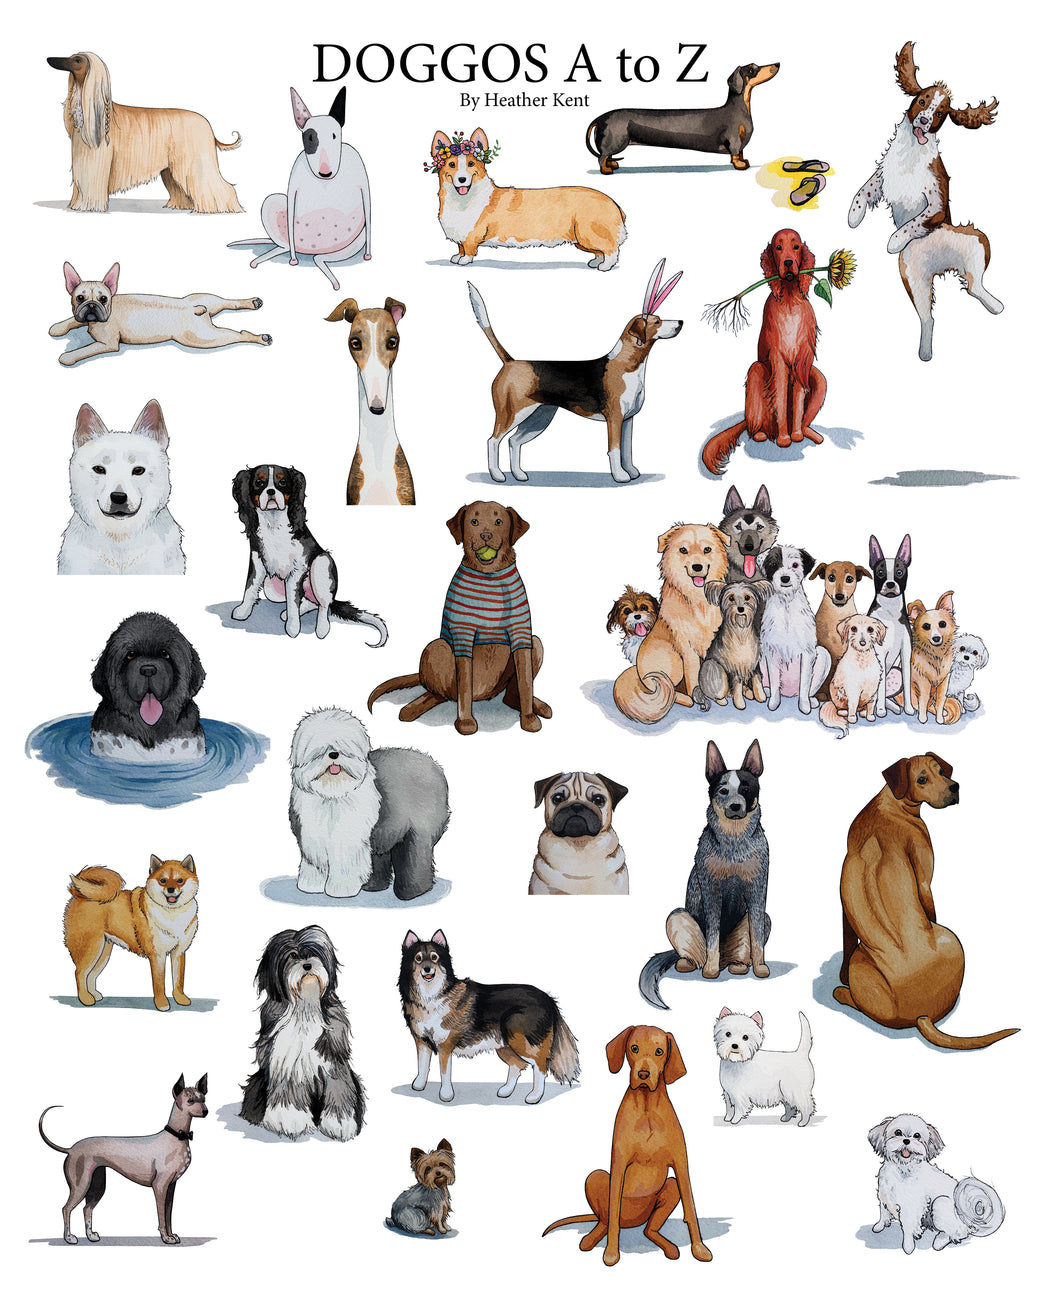 DOGGOS Print *without letters*, Dog Breed Alphabet Fine Art Giclee Print, 9x12 inch